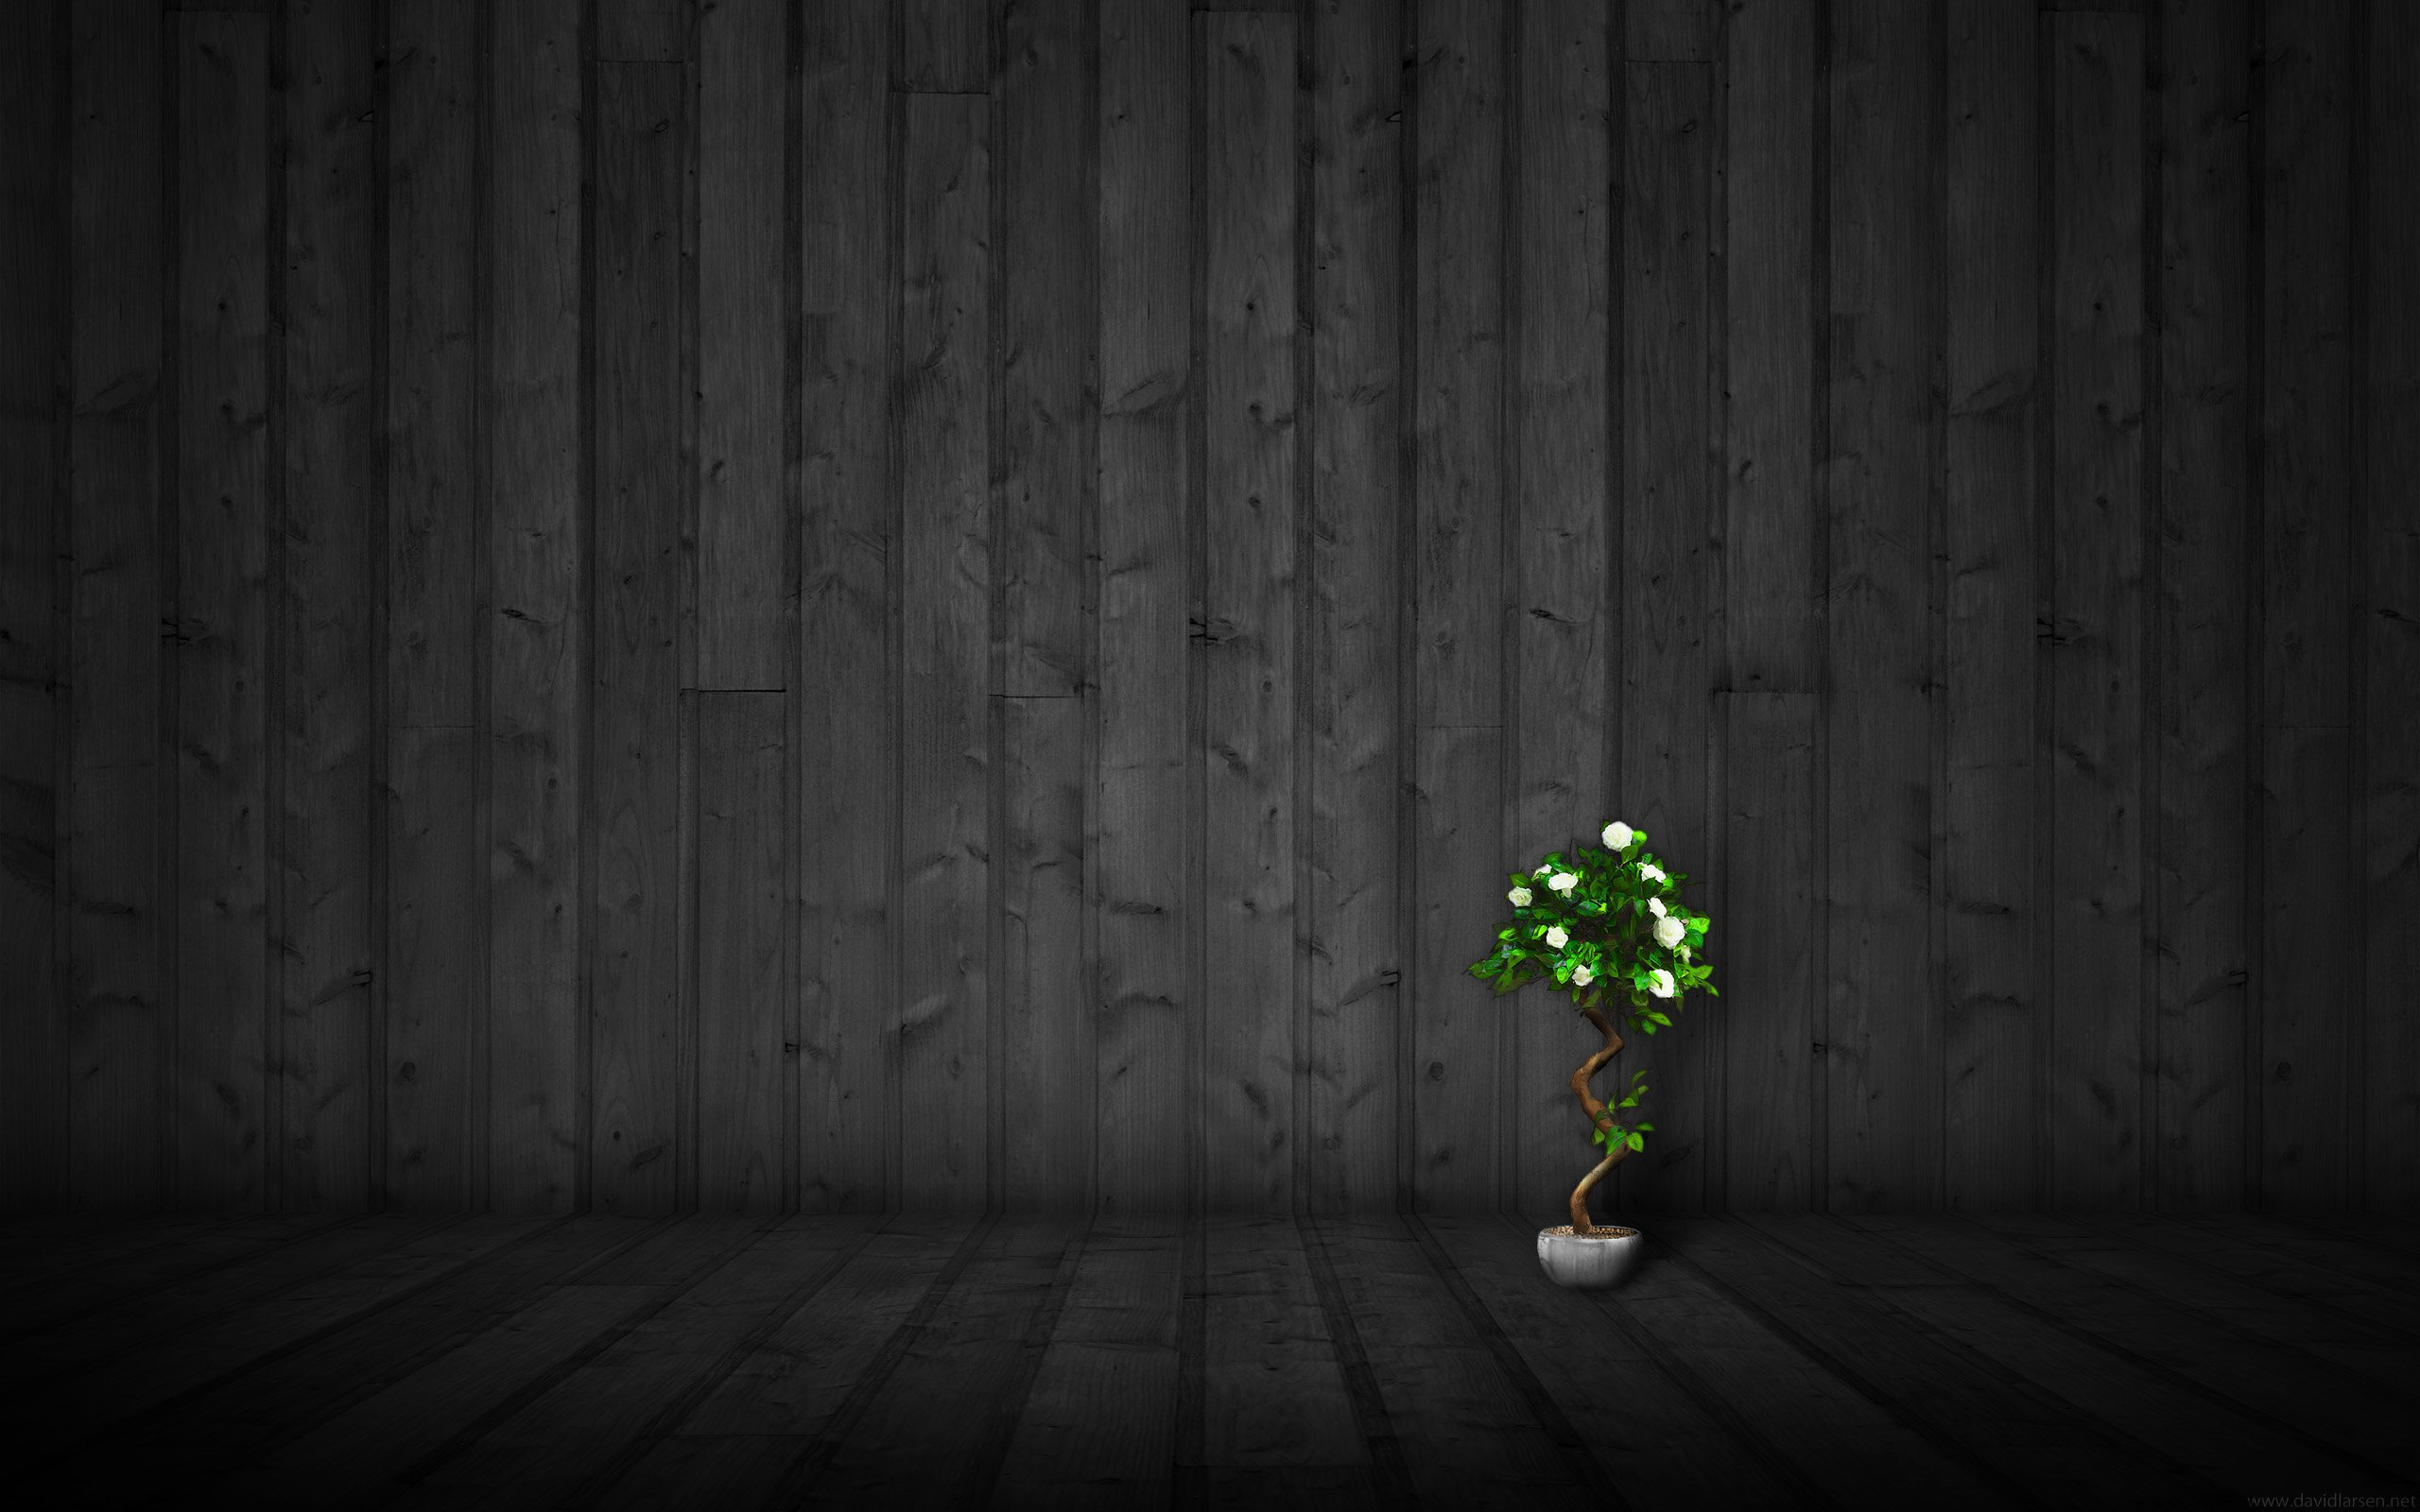 Theme Bin Blog Archive Dark Wood 2 HD Wallpaper 2560x1600